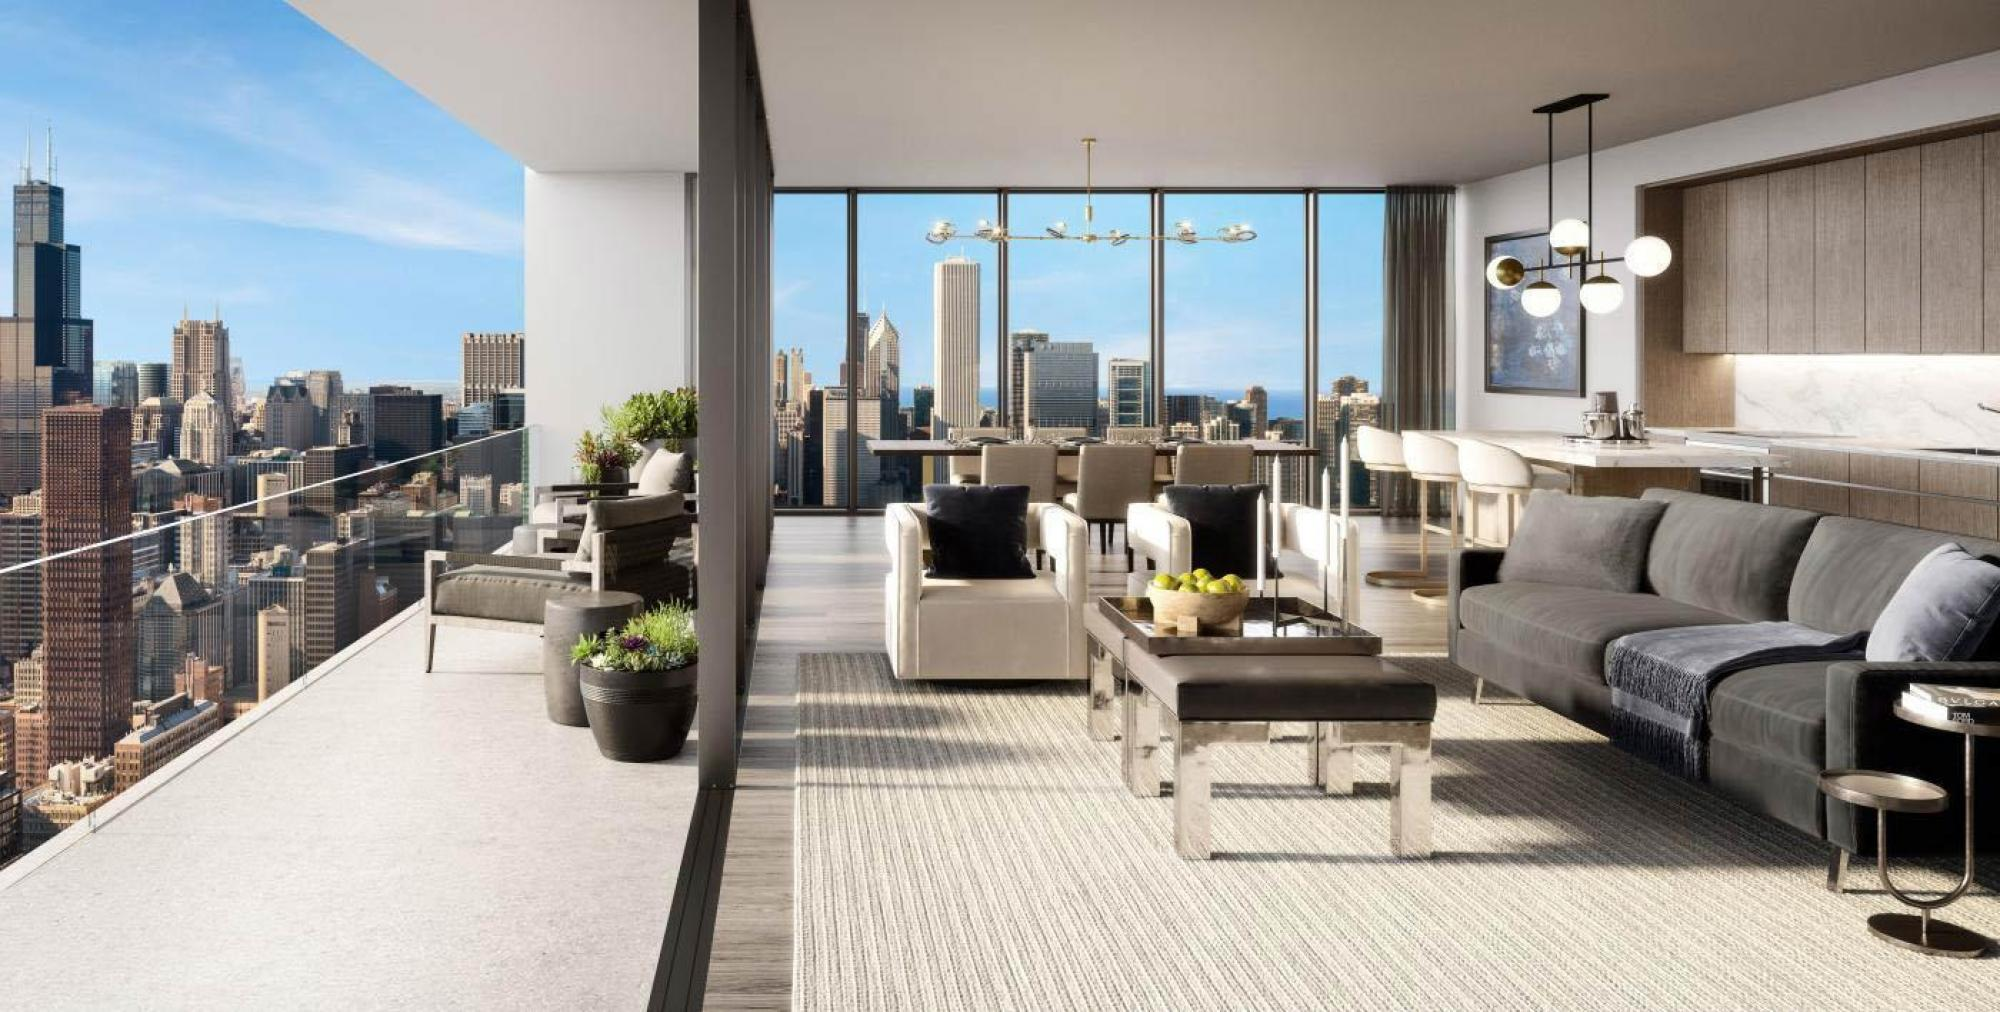 Skyline Collection sets a new elevated standard for luxury apartments in Downtown Chicago.